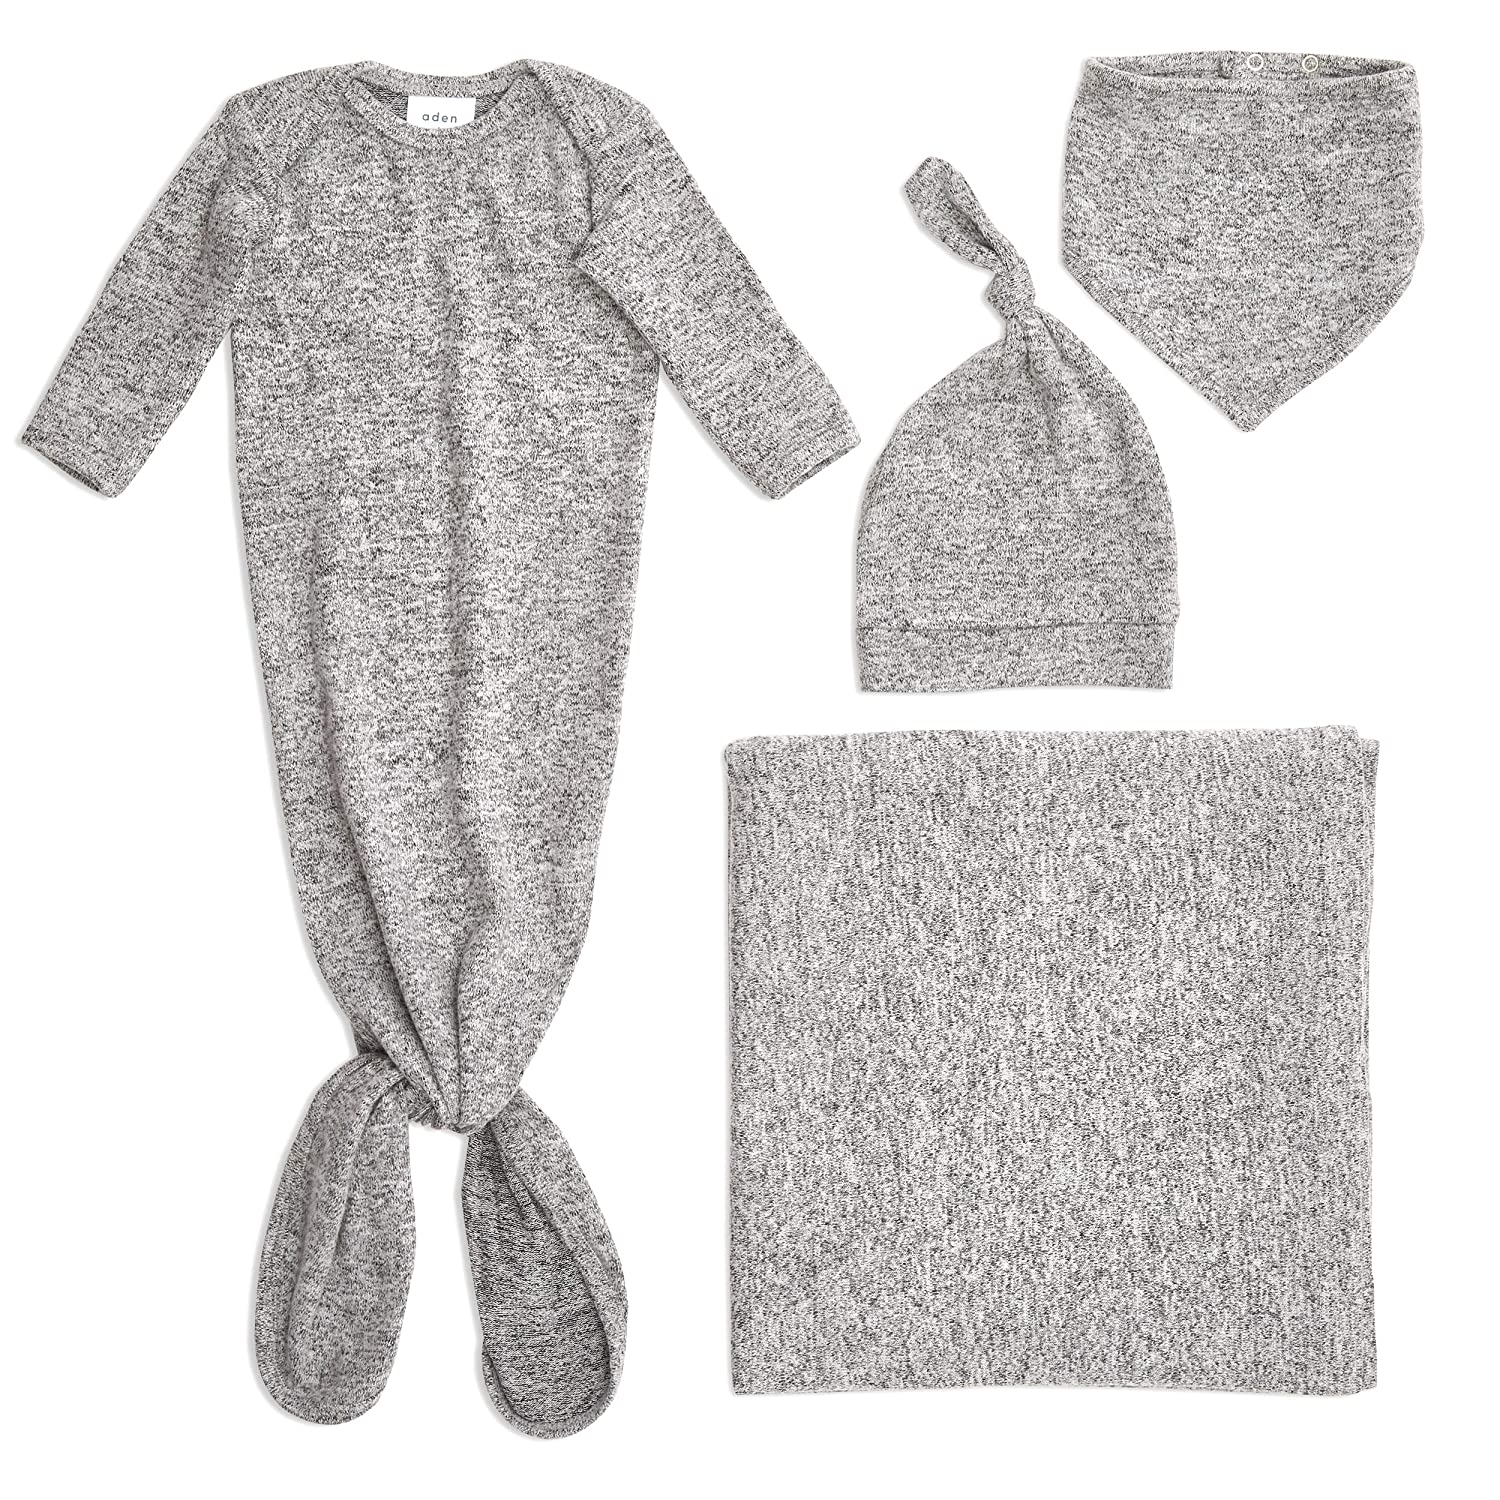 aden + anais Snuggle Knit Newborn Gift Set with Knotted Baby Gown, Swaddle Blanket, Infant Hat, and Bandana Bib, 0-3 Months, Heather Grey